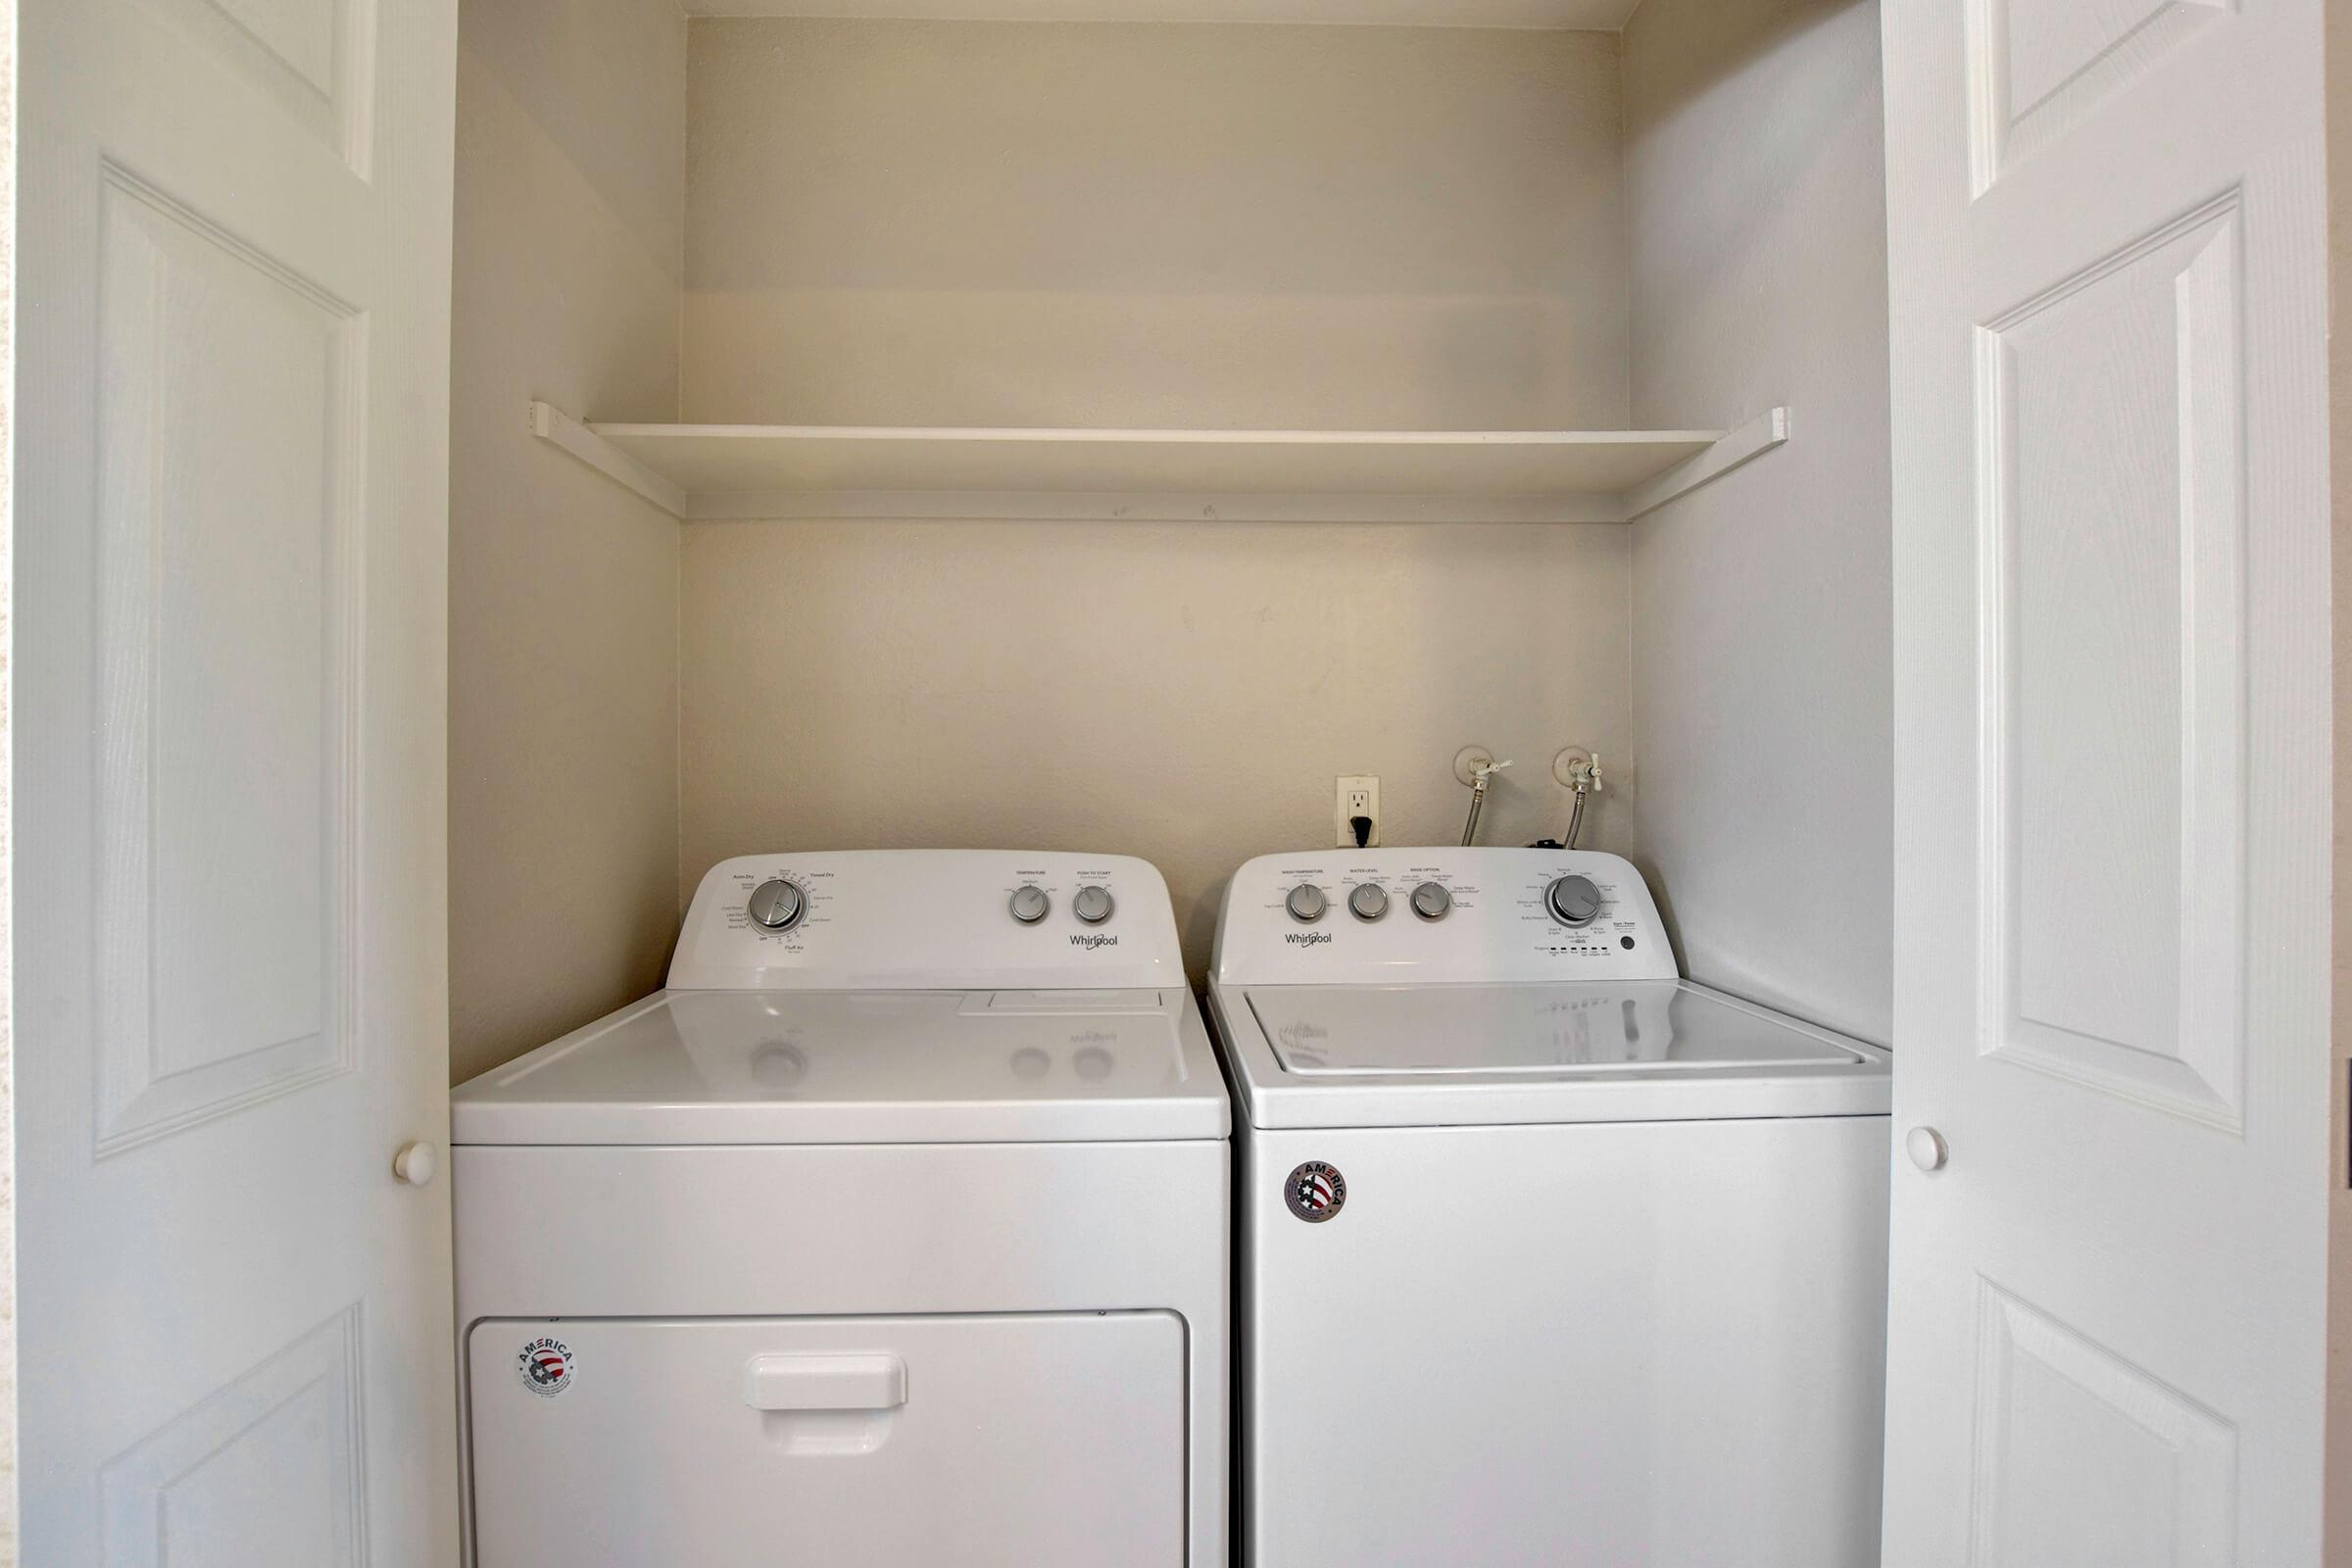 a white refrigerator freezer sitting next to a sink